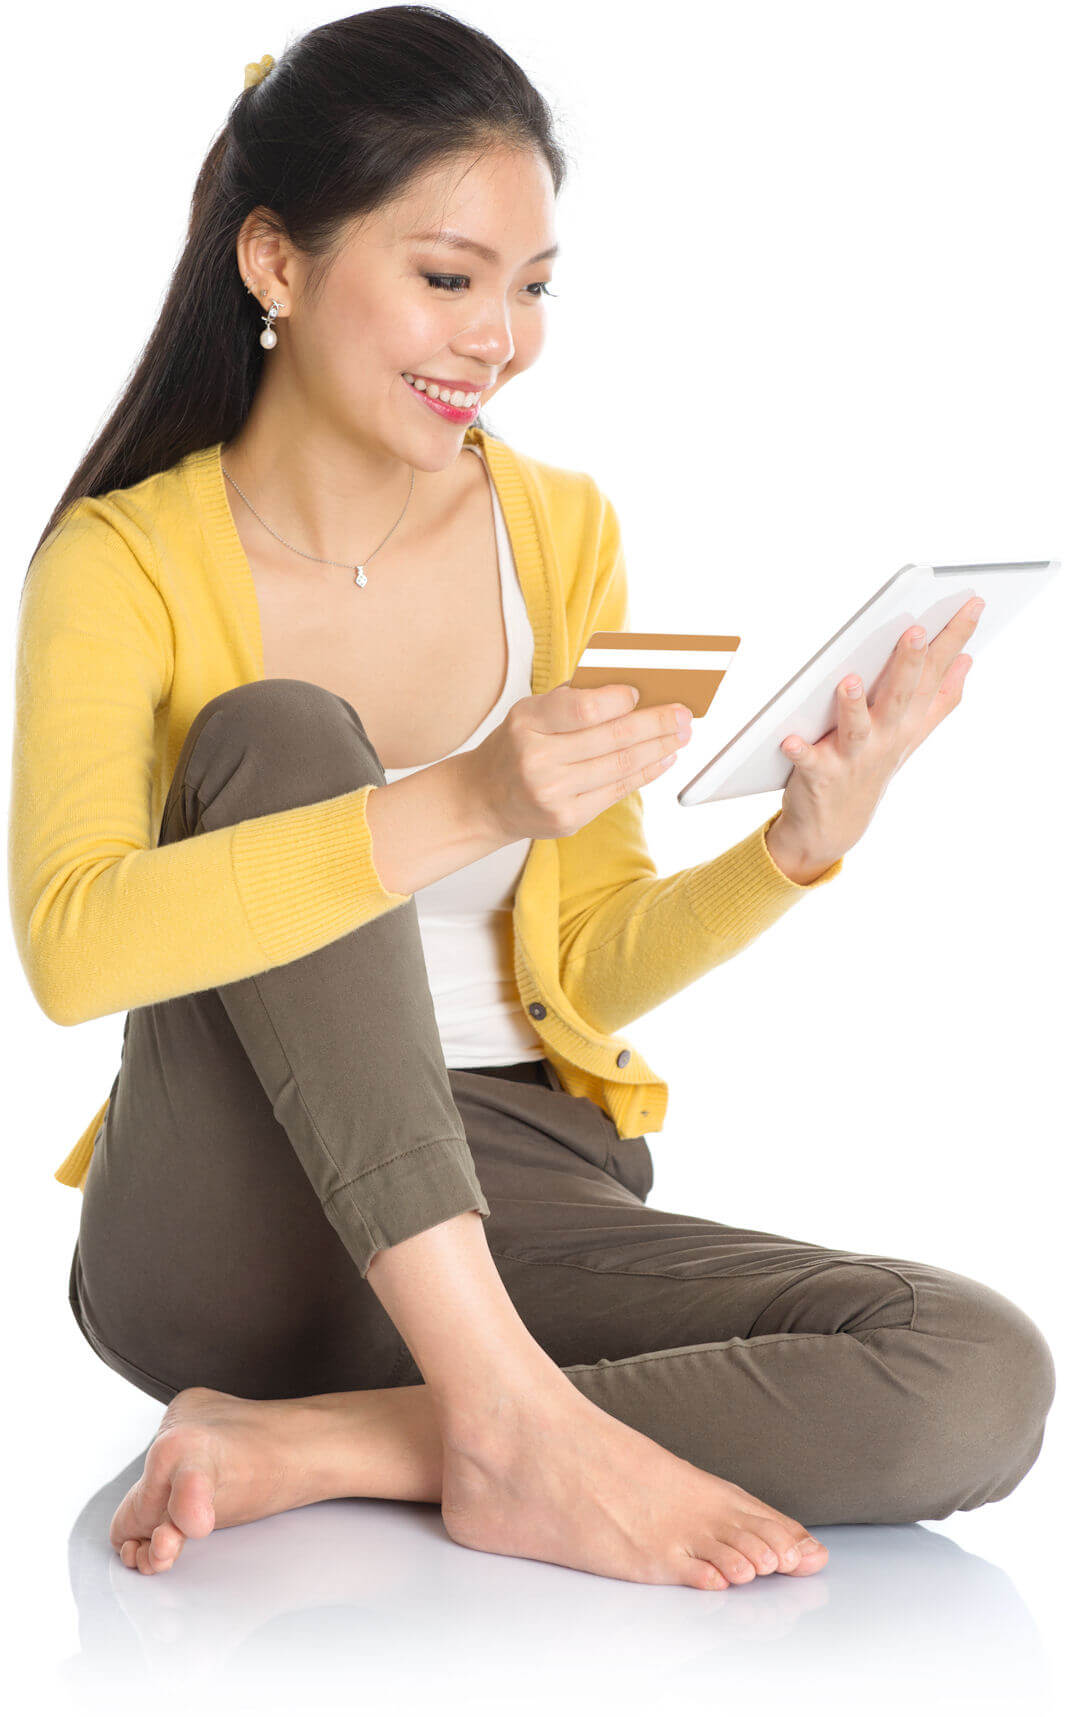 Chinese Online Shopper Using UnionPay Card